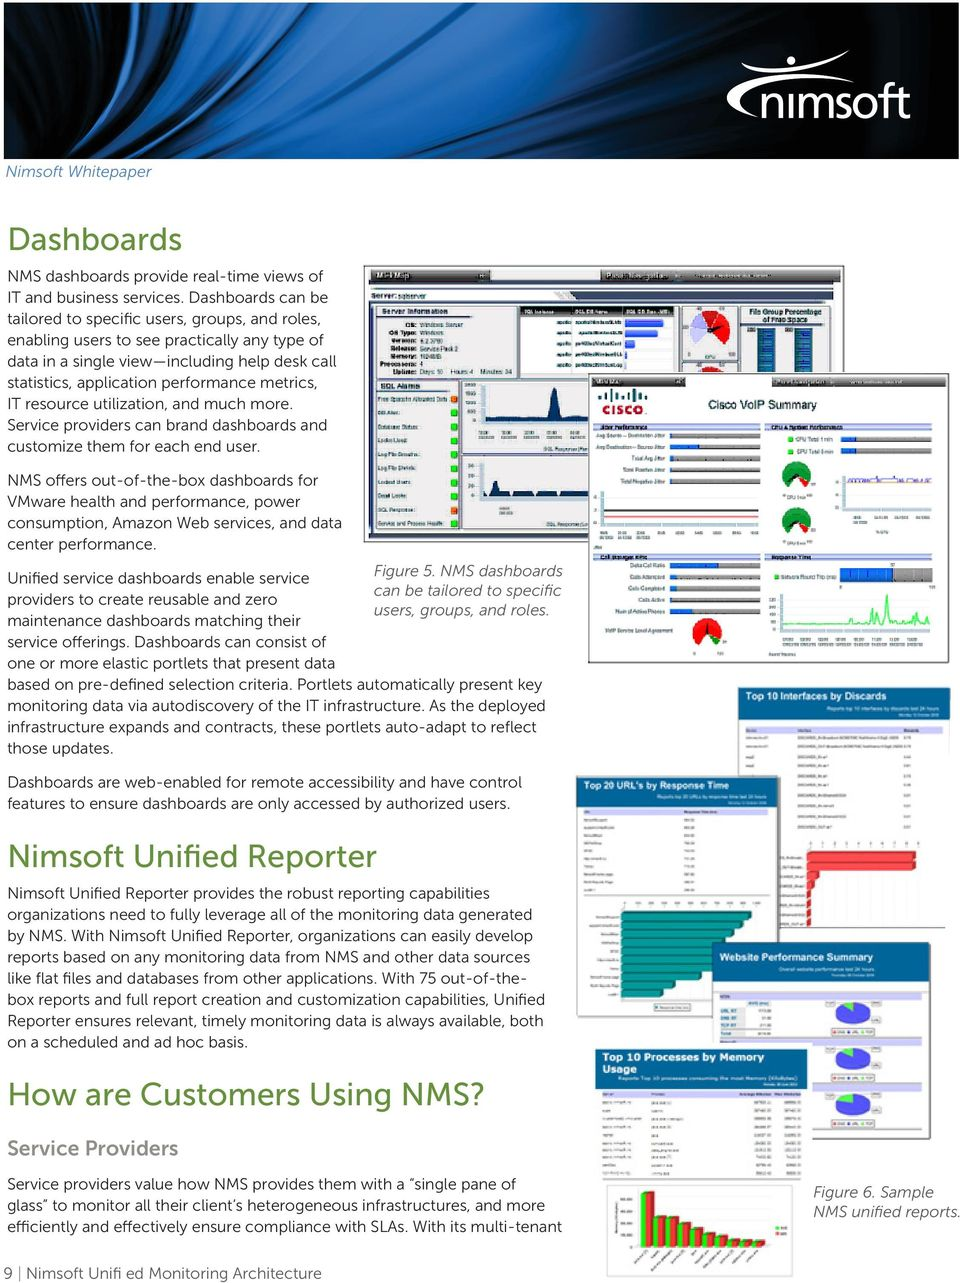 Nimsoft Unified Monitoring Architecture  An Overview - PDF